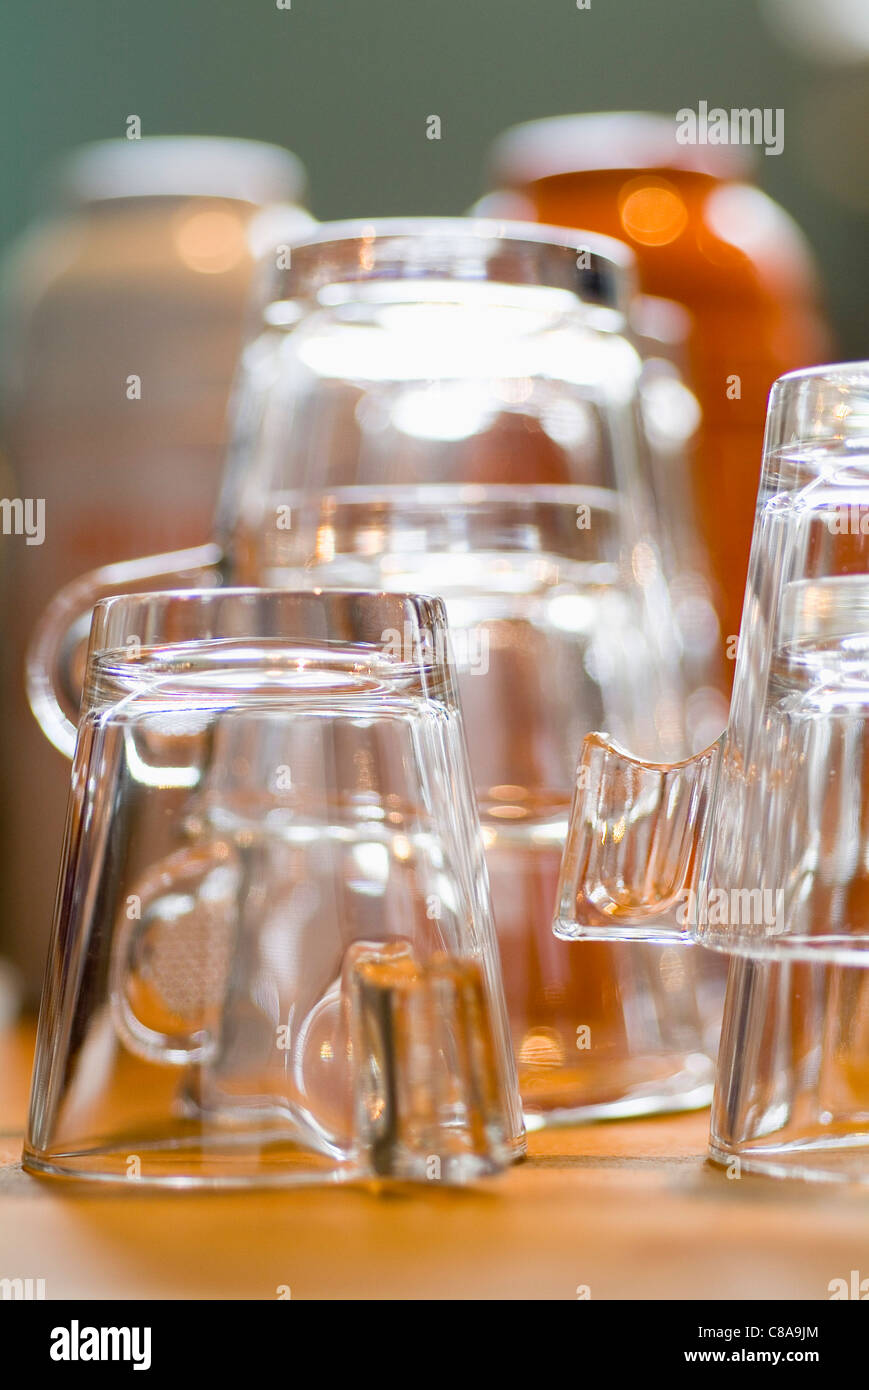 Clean and empty glass cups - Stock Image